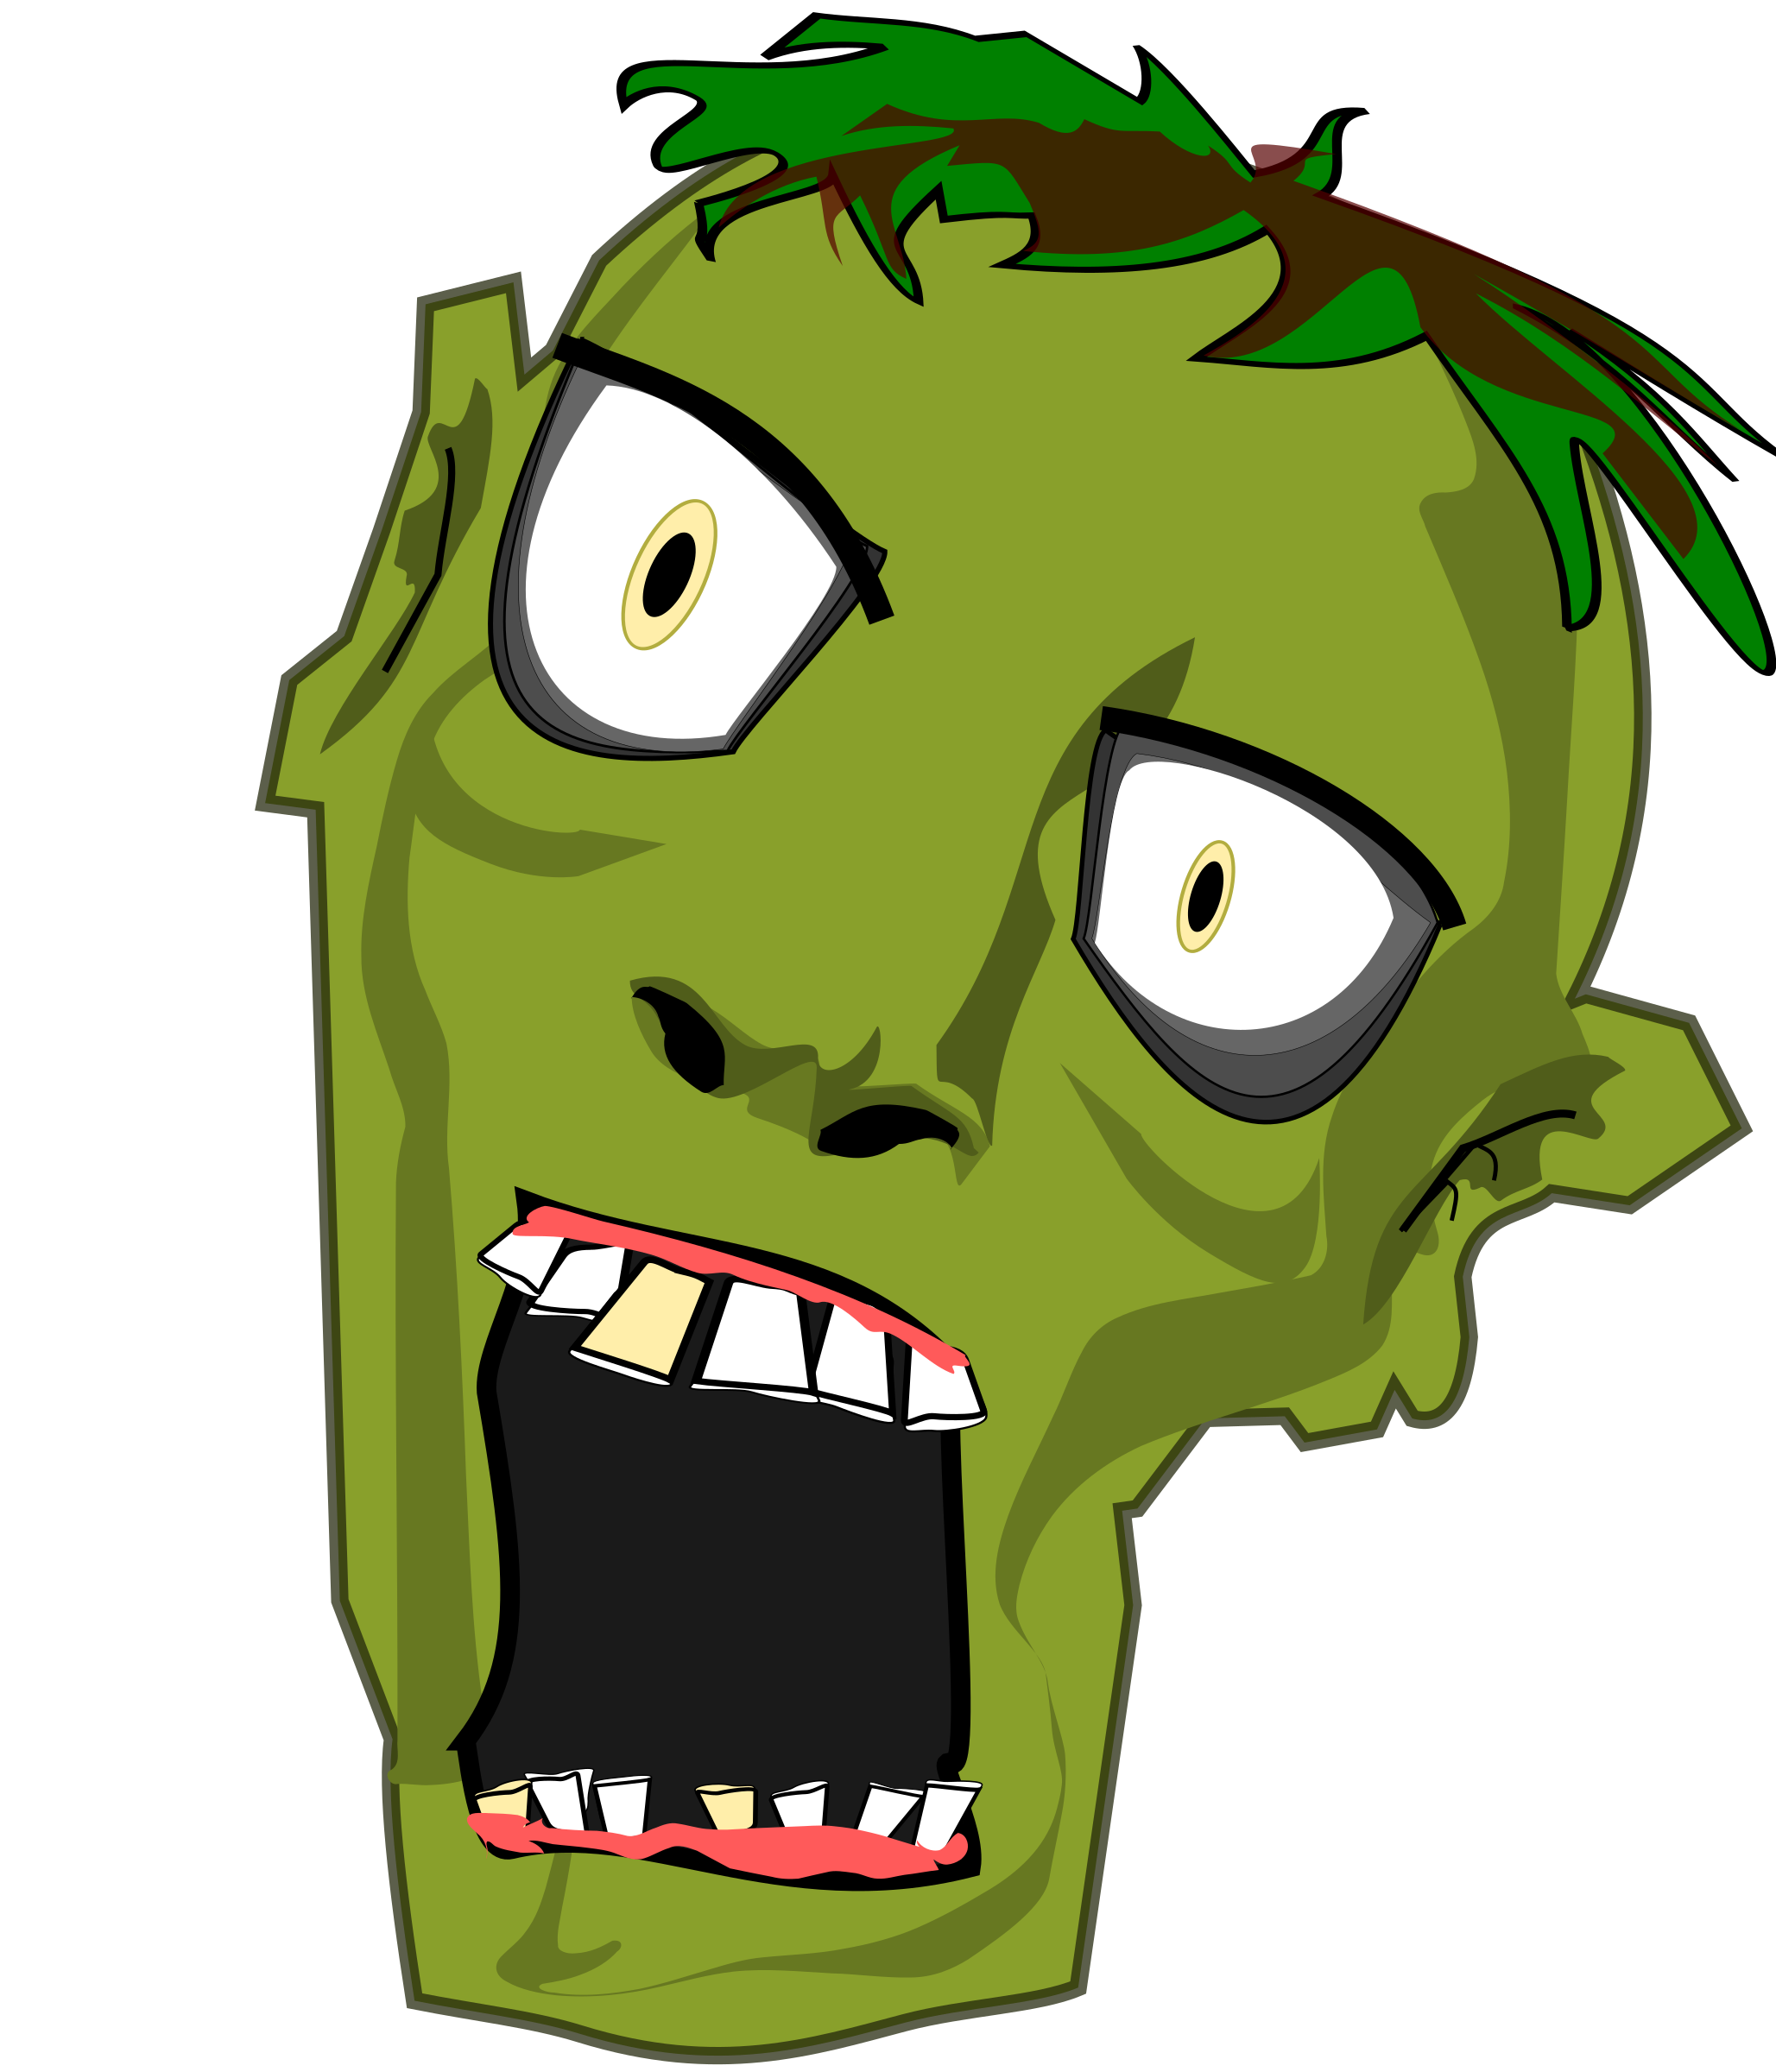 Foot clipart zombie. Head big image png